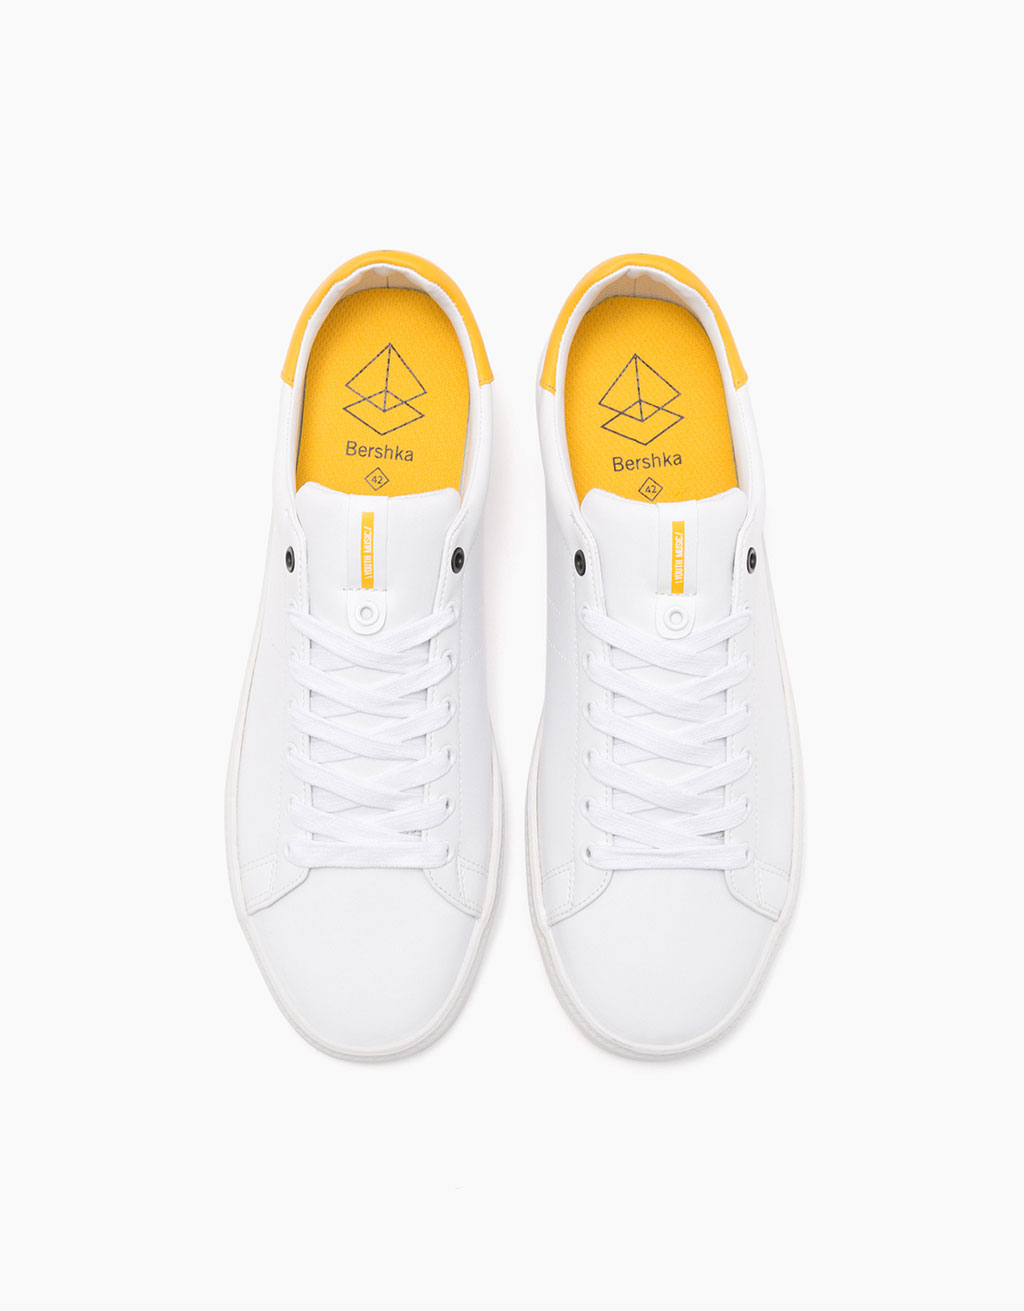 Men's basic plimsolls with yellow detail